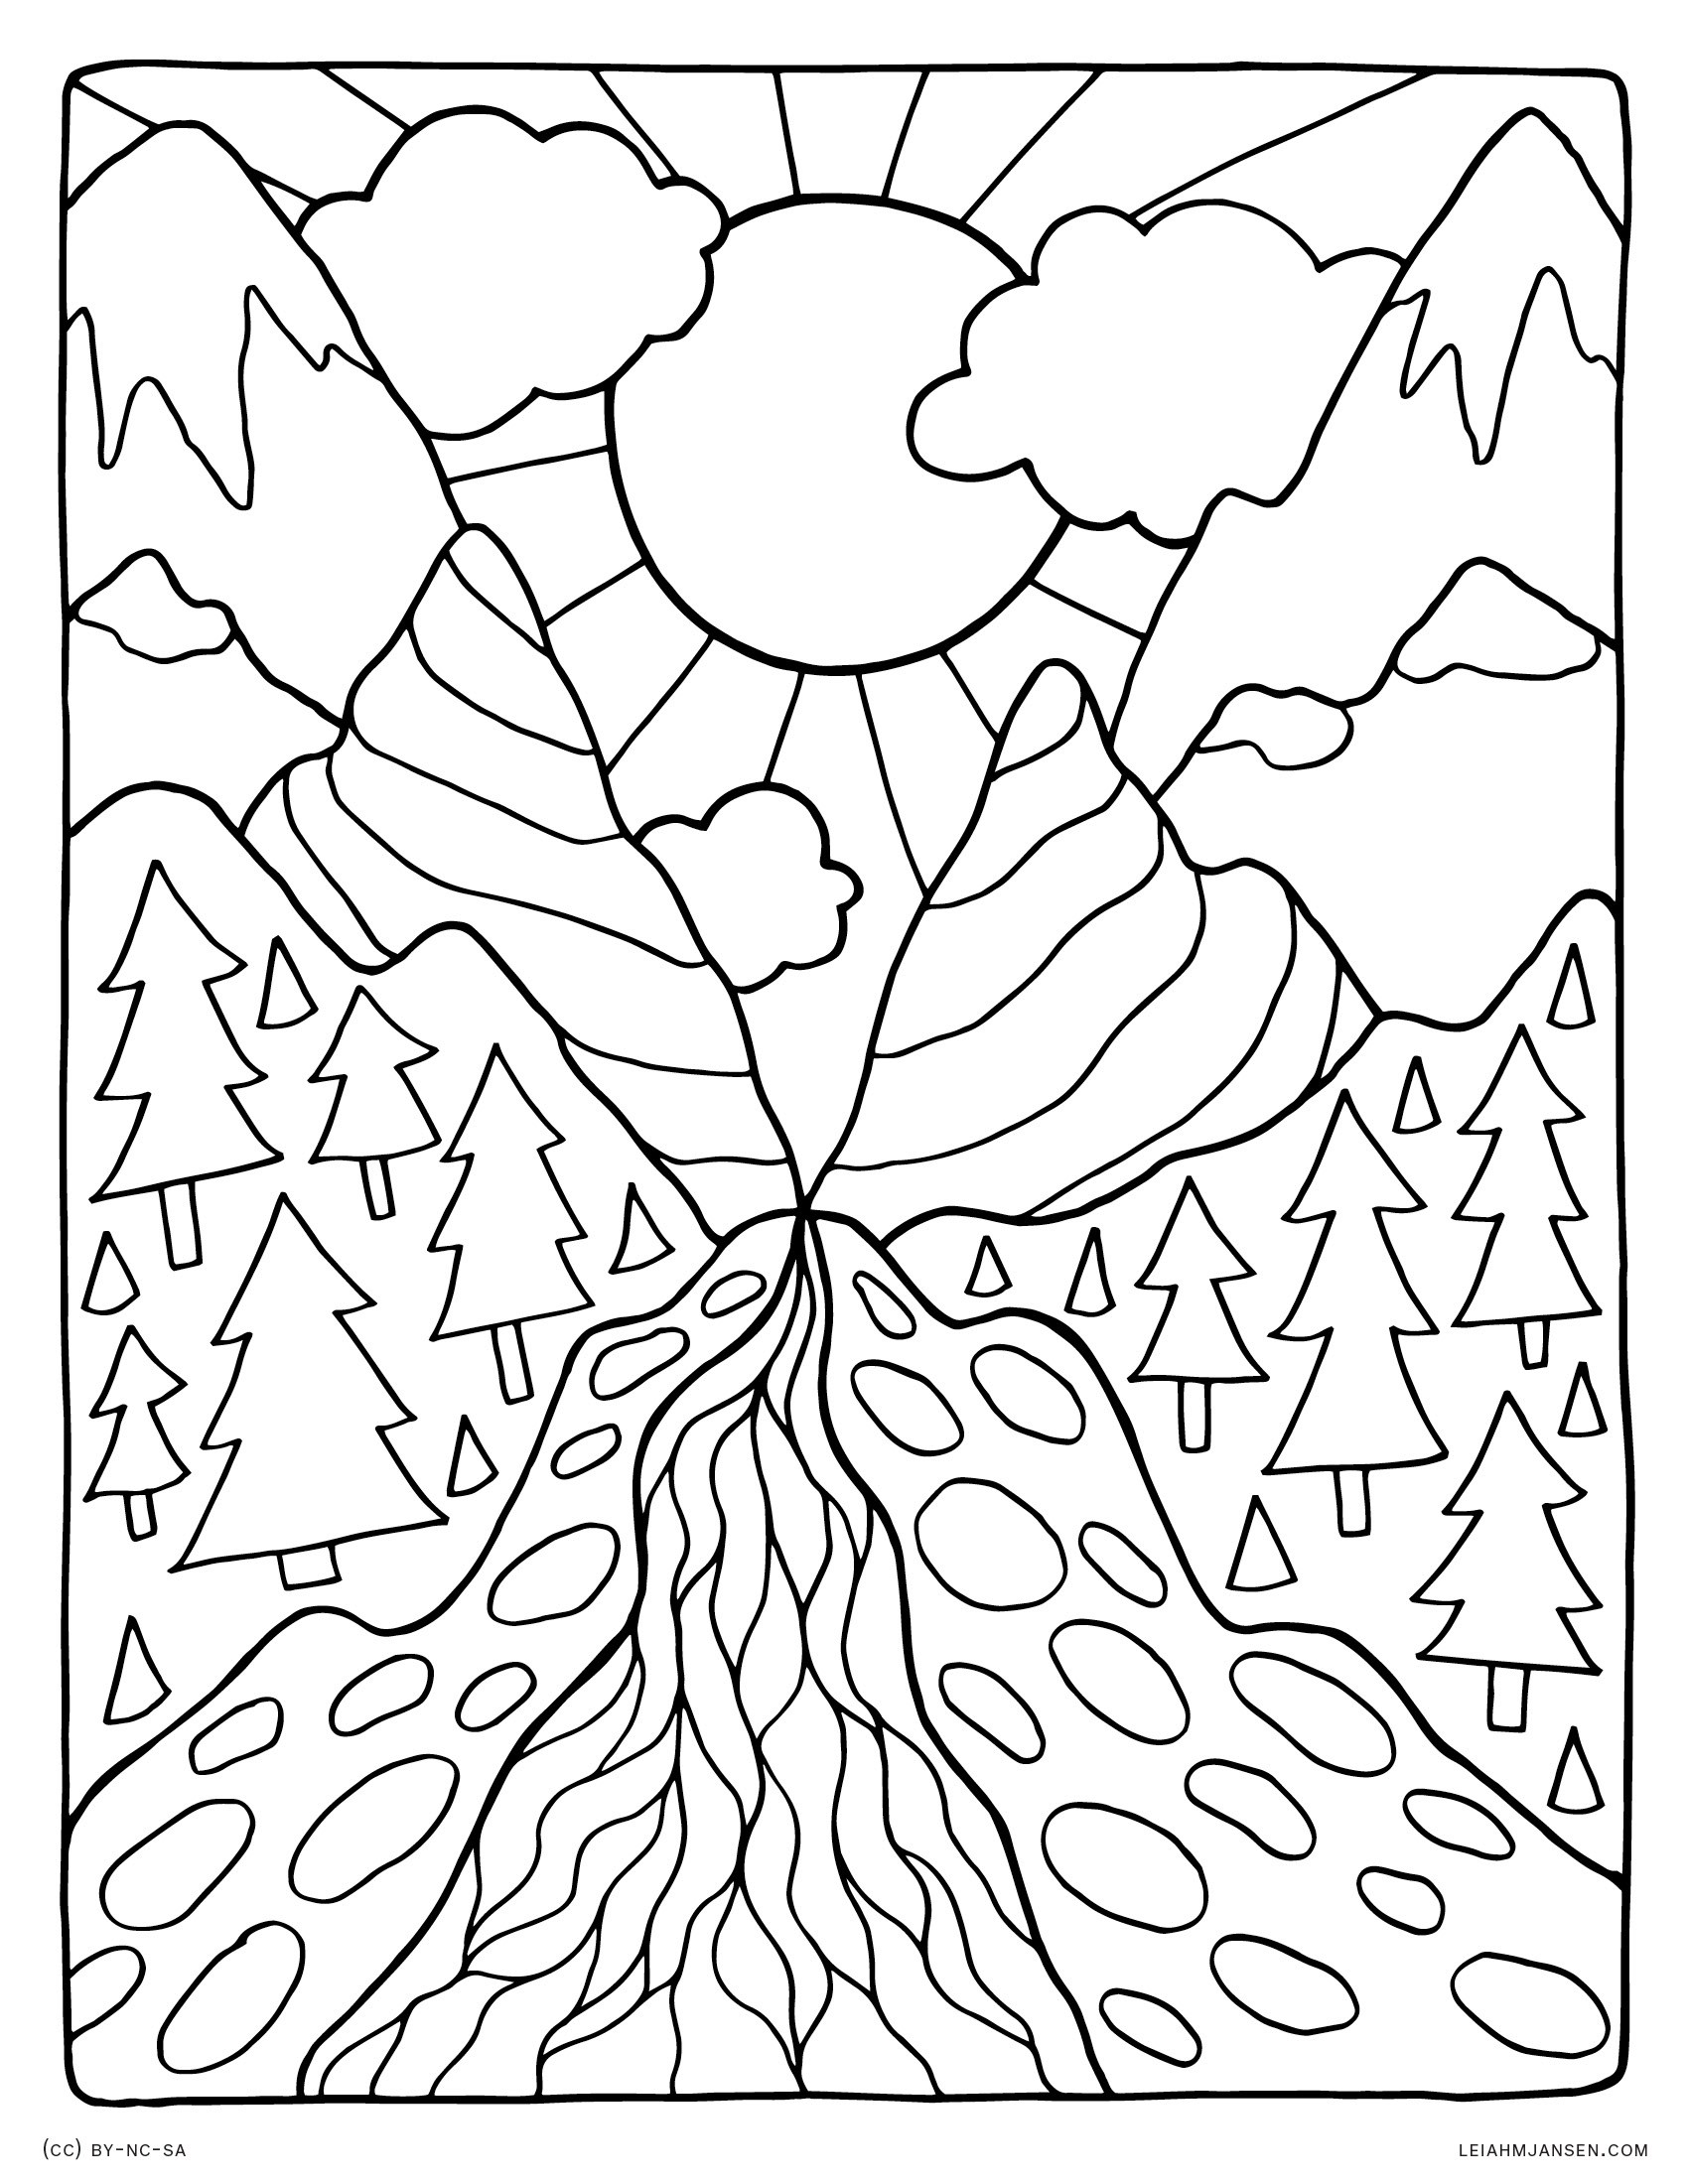 coloring scene jungle scene coloring page free printable coloring pages coloring scene